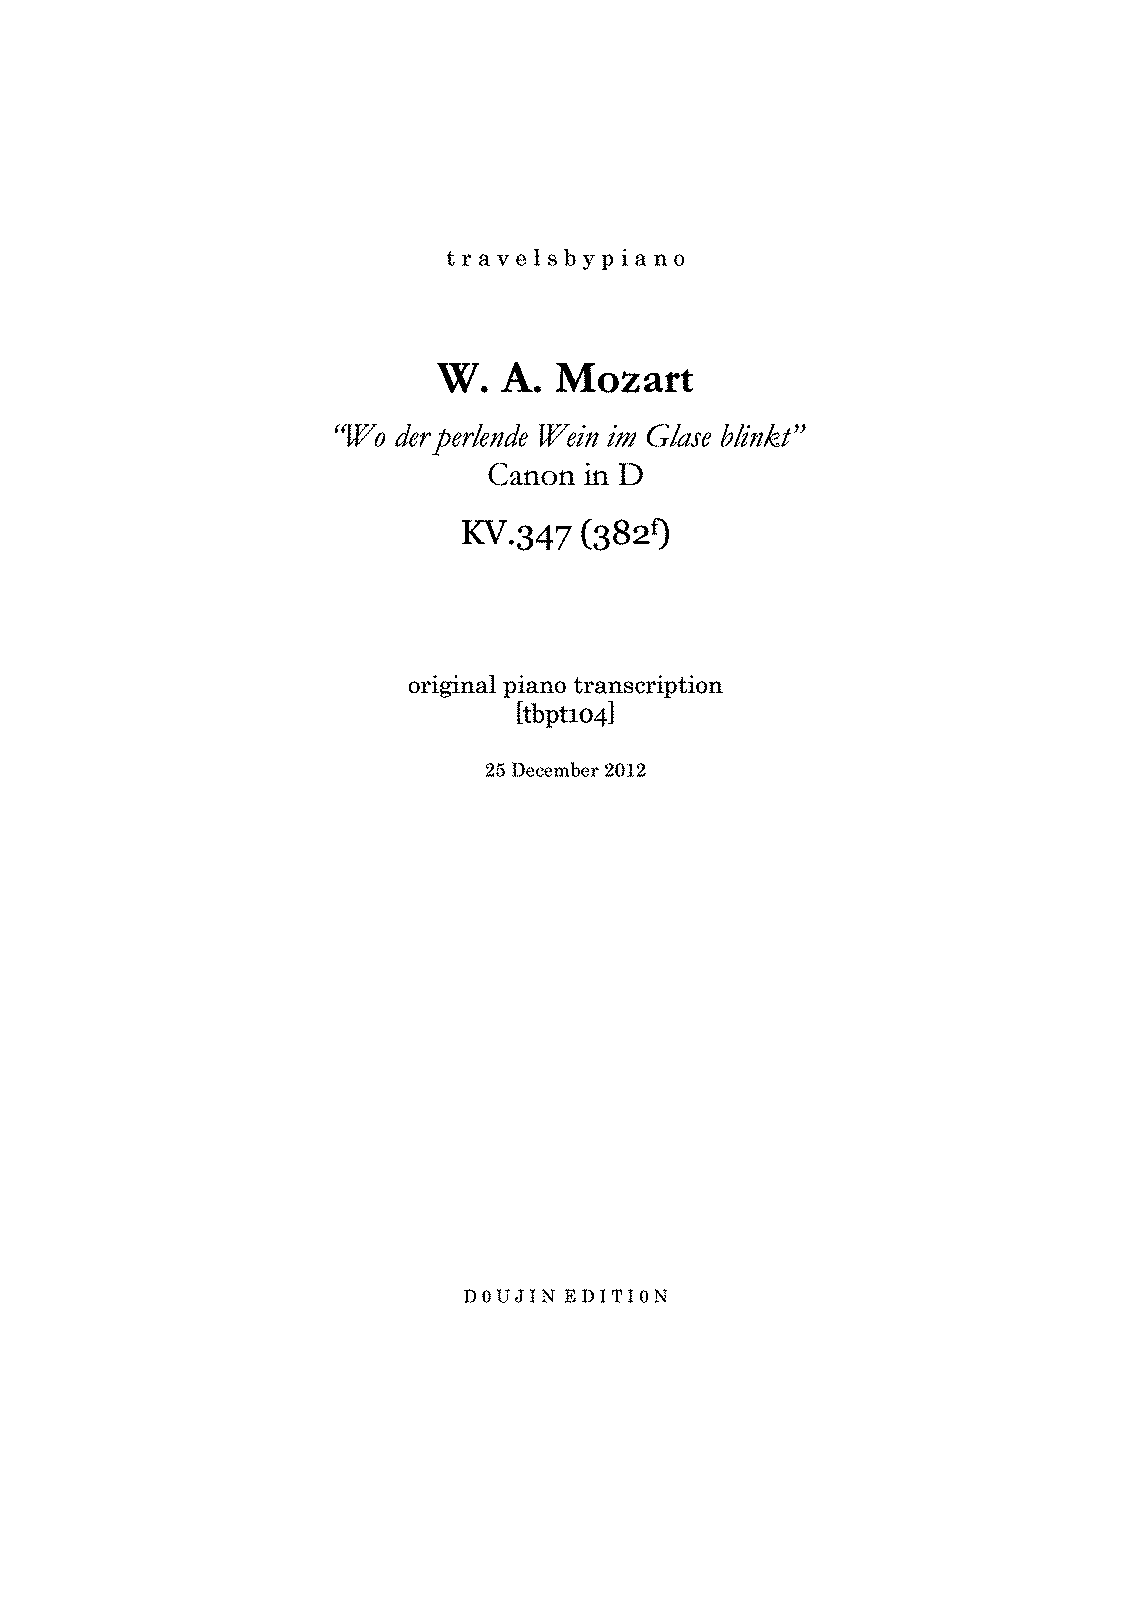 PMLP134279--travelsbypiano- tbpt104 W.A.Mozart Canon 'Wo der perlende Wein im Glase blinkt' in D KV.347 (382f) piano transcription -D99833C5-.pdf